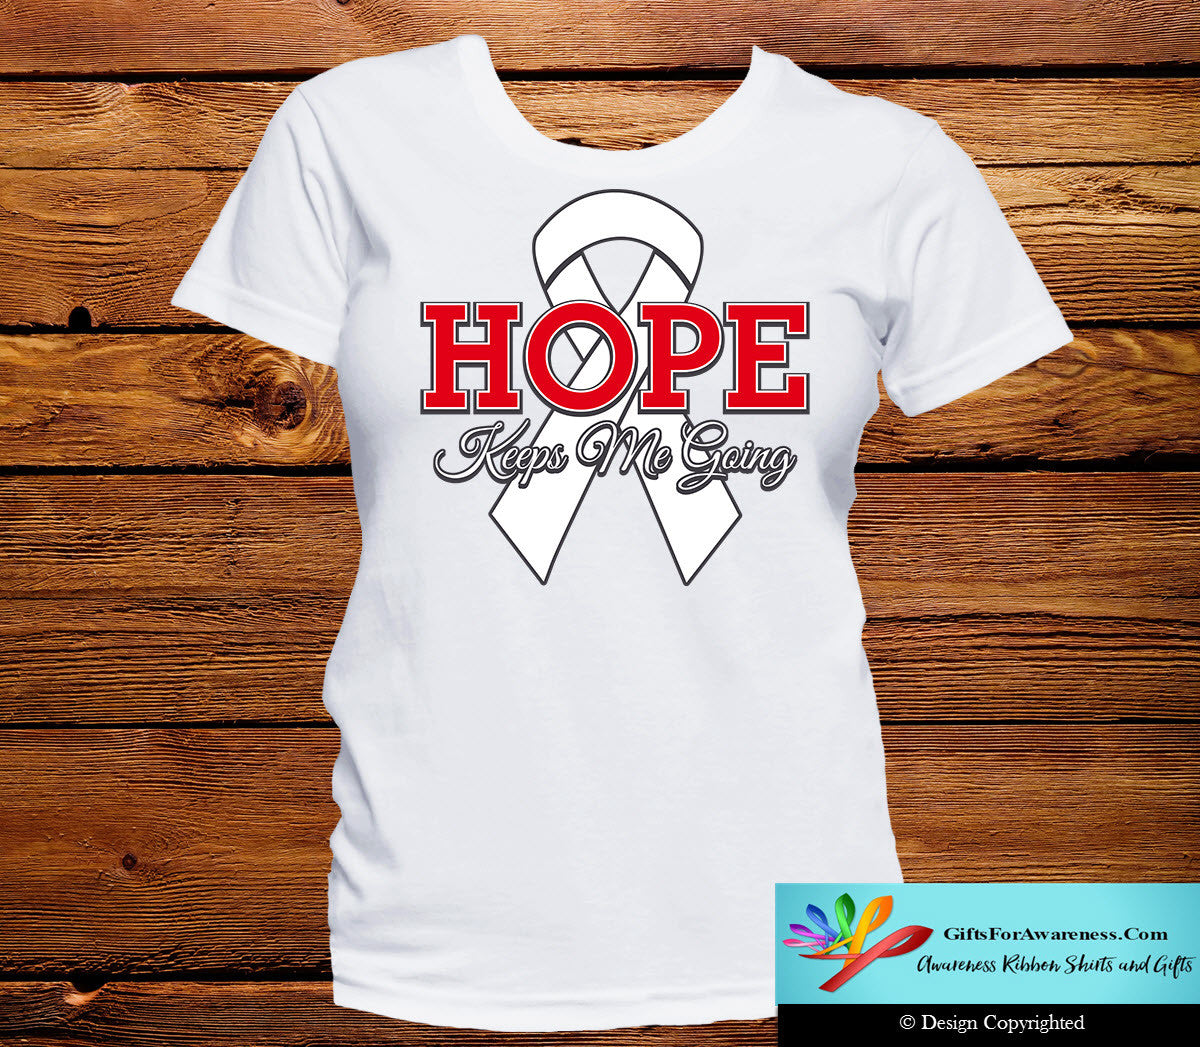 Lung Cancer Hope Keeps Me Going Shirts - GiftsForAwareness